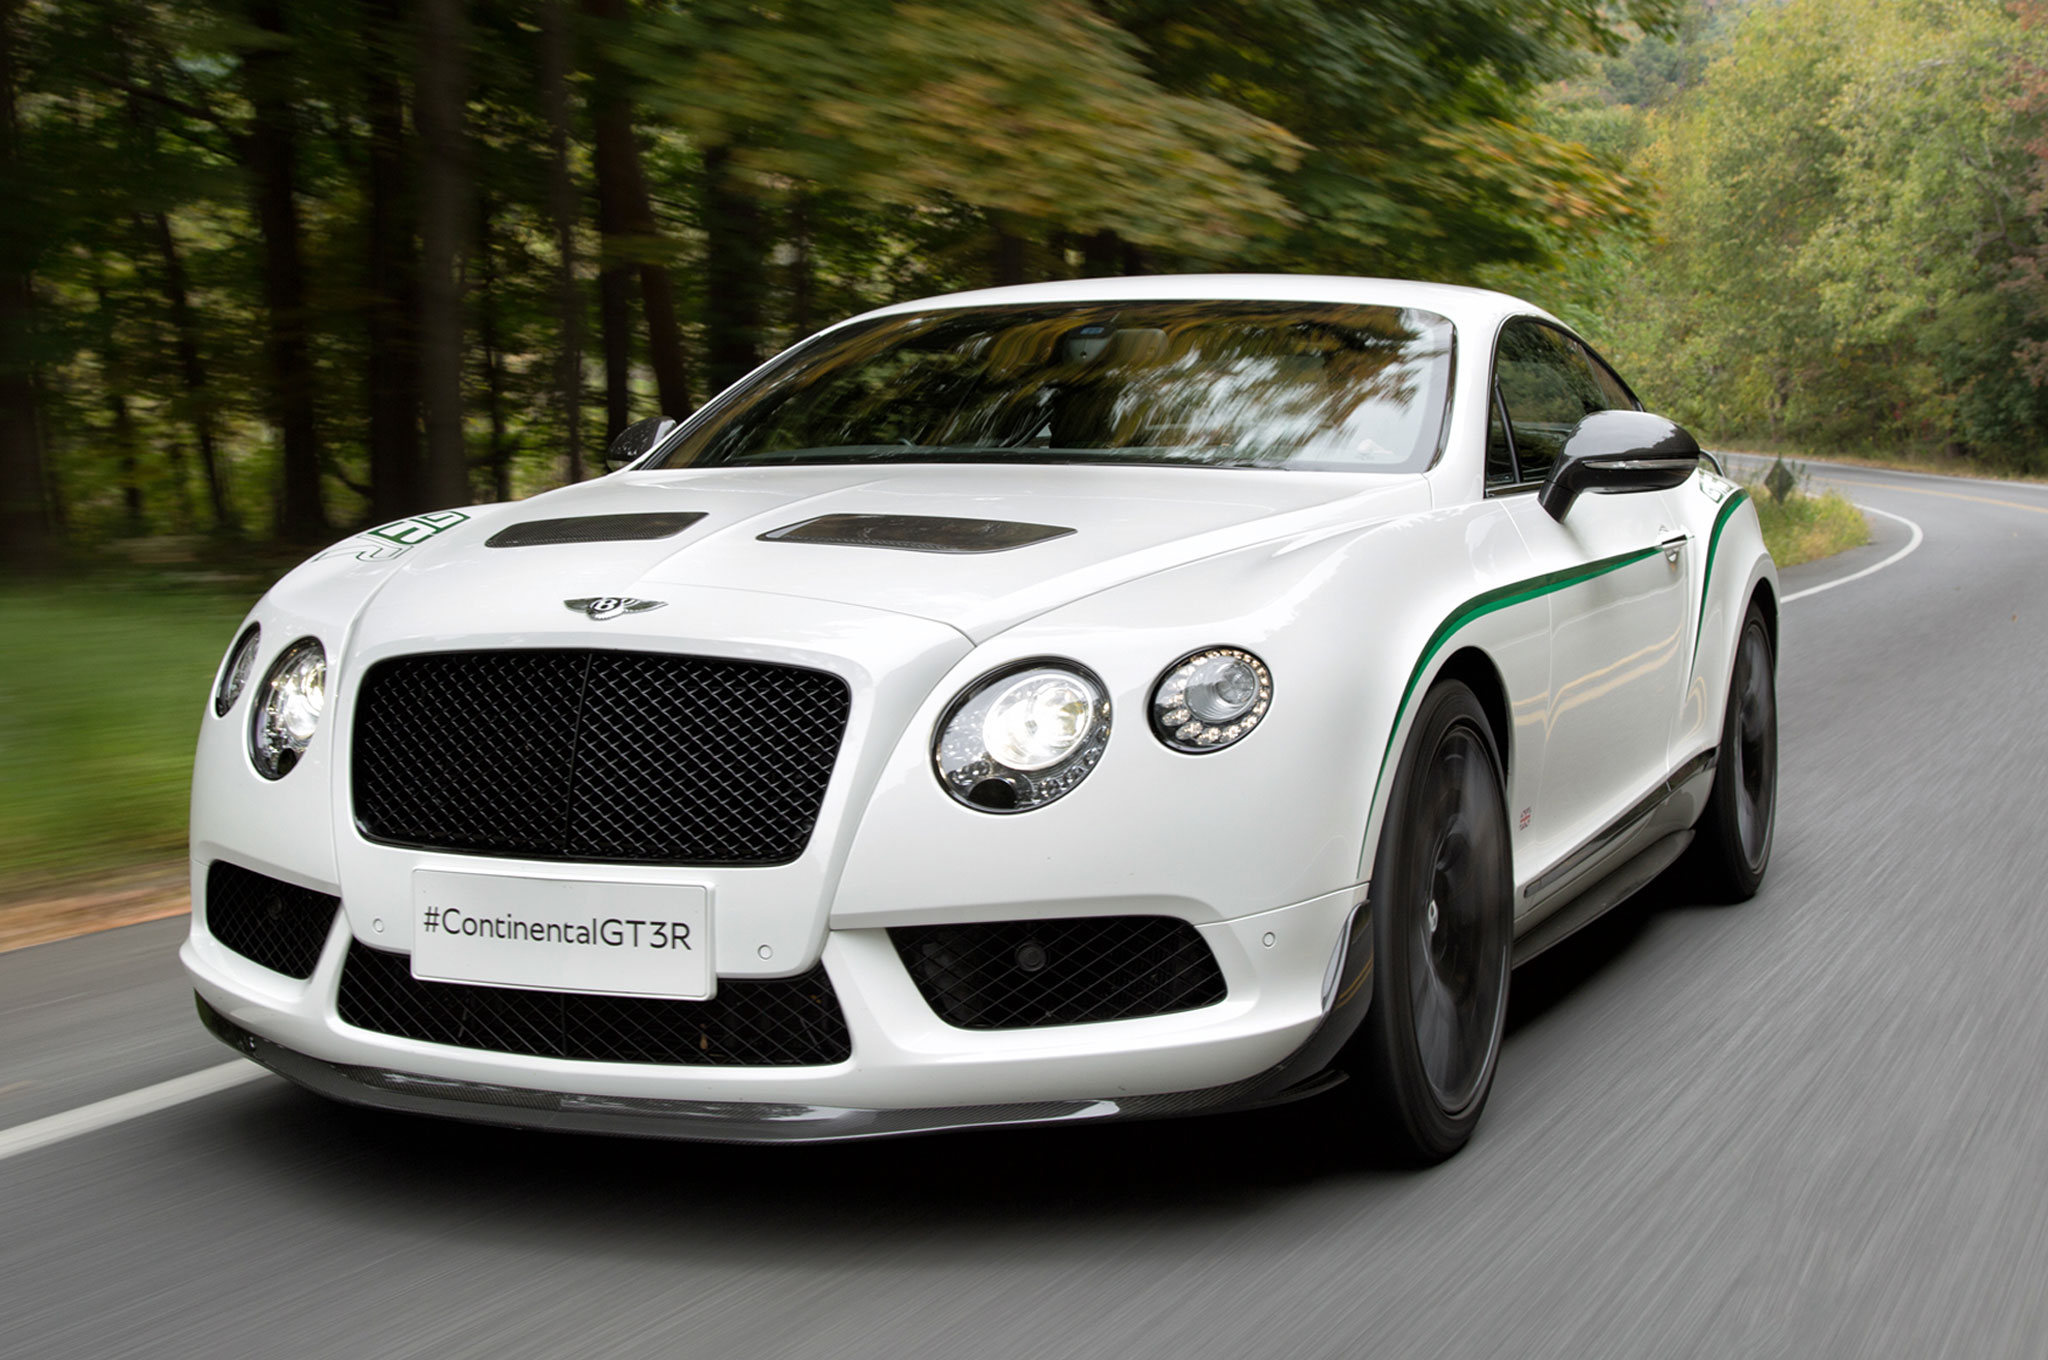 auction posts to sir media elton bentley price s sold news be continental gtc john at